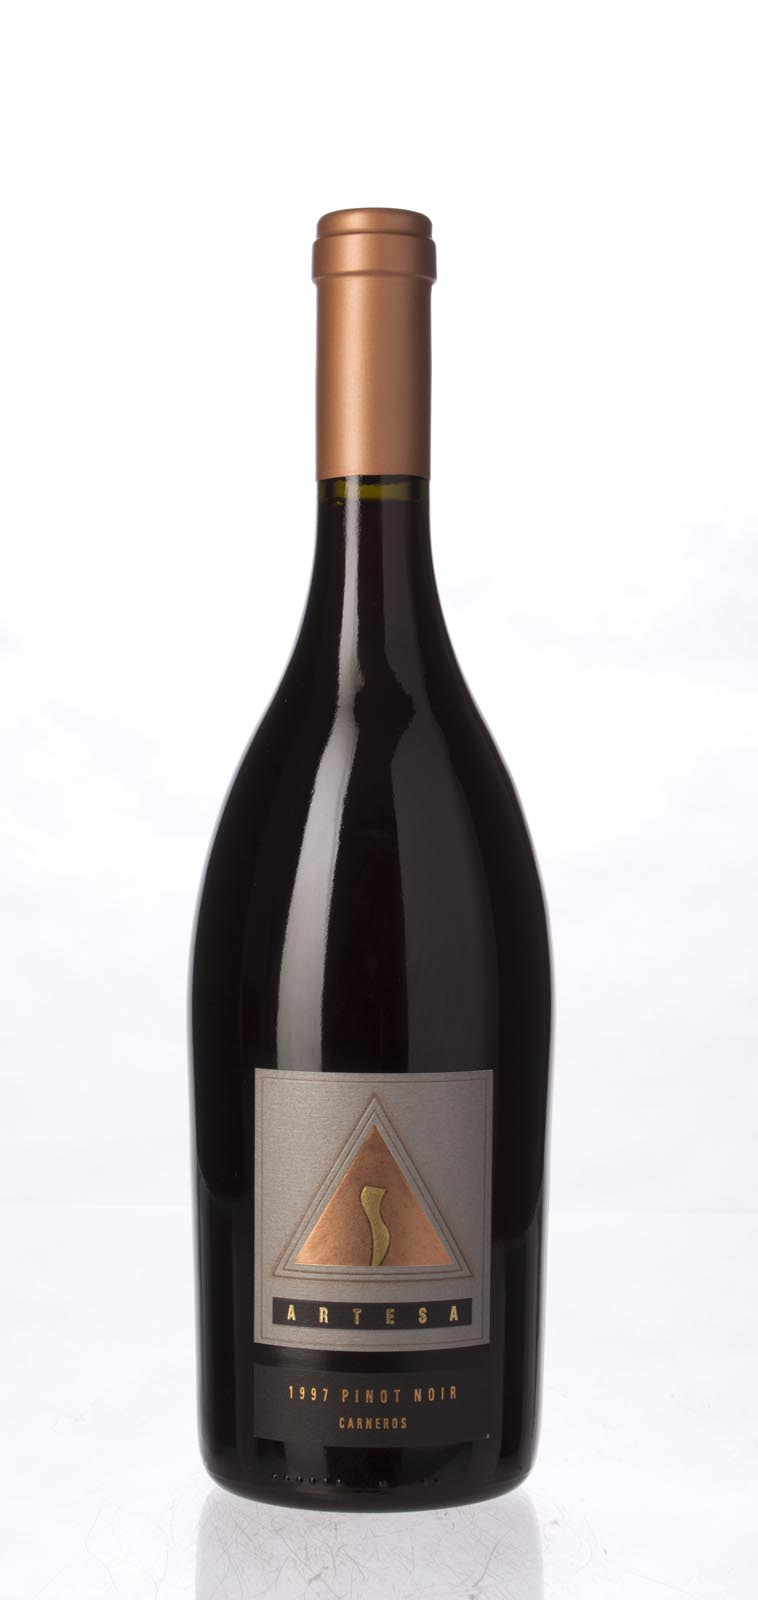 Artesa Pinot Noir Carneros 1997, 750mL () from The BPW - Merchants of rare and fine wines.